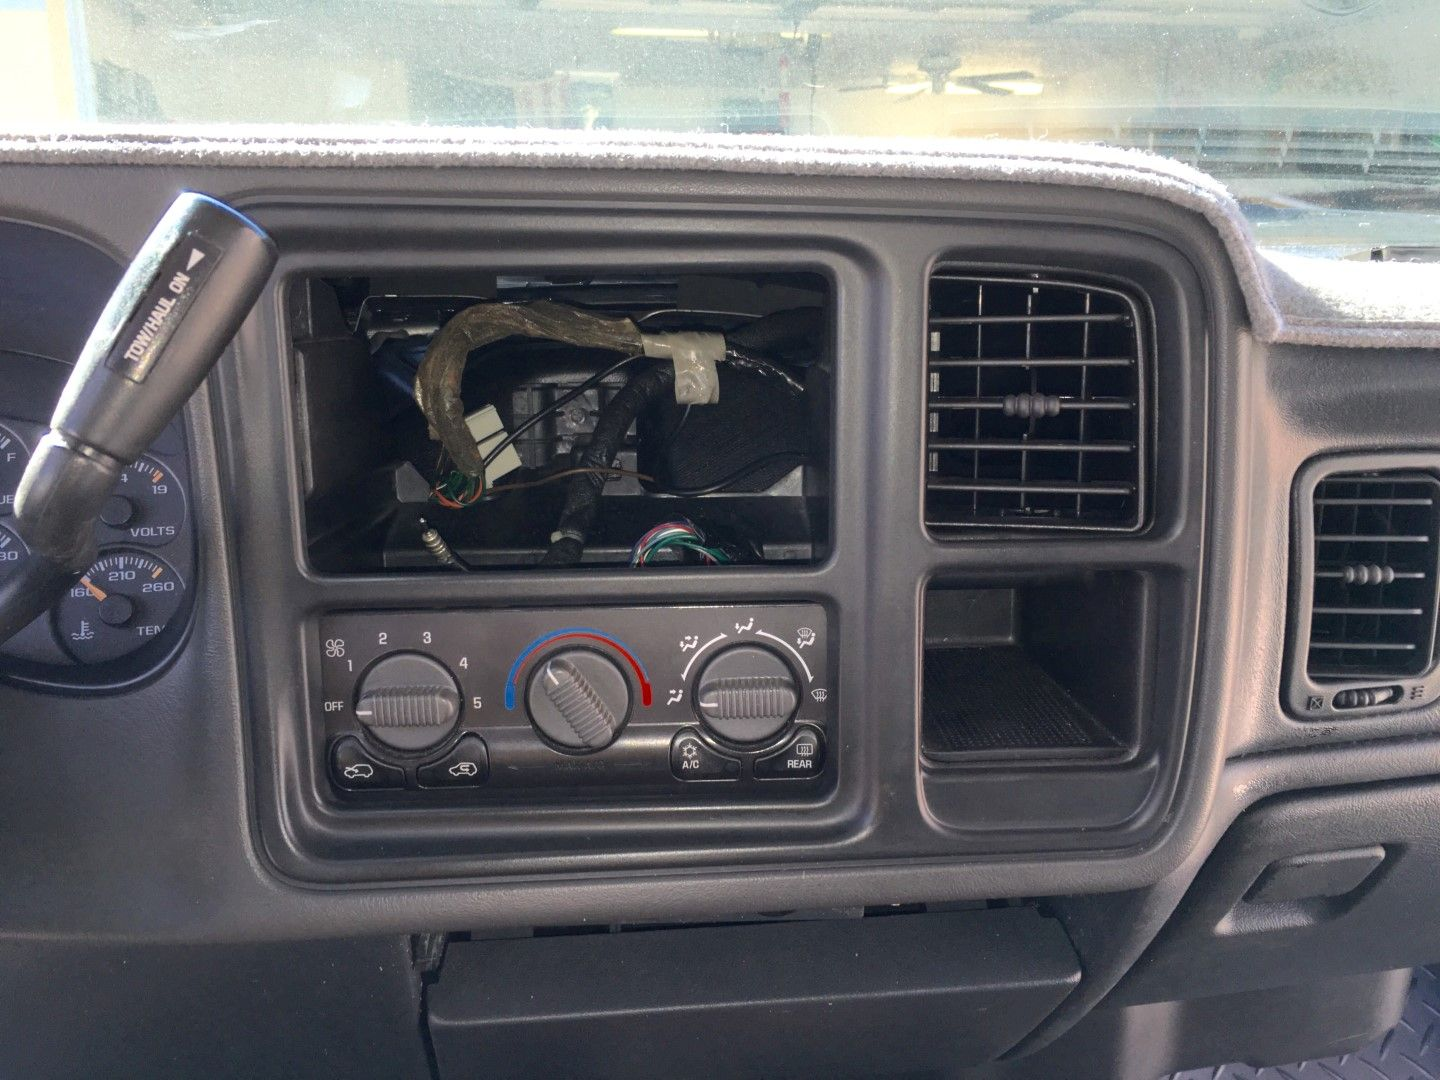 2002 Avalanche Radio Double Din Mod Chevy Avalanche Chevrolet Avalanche